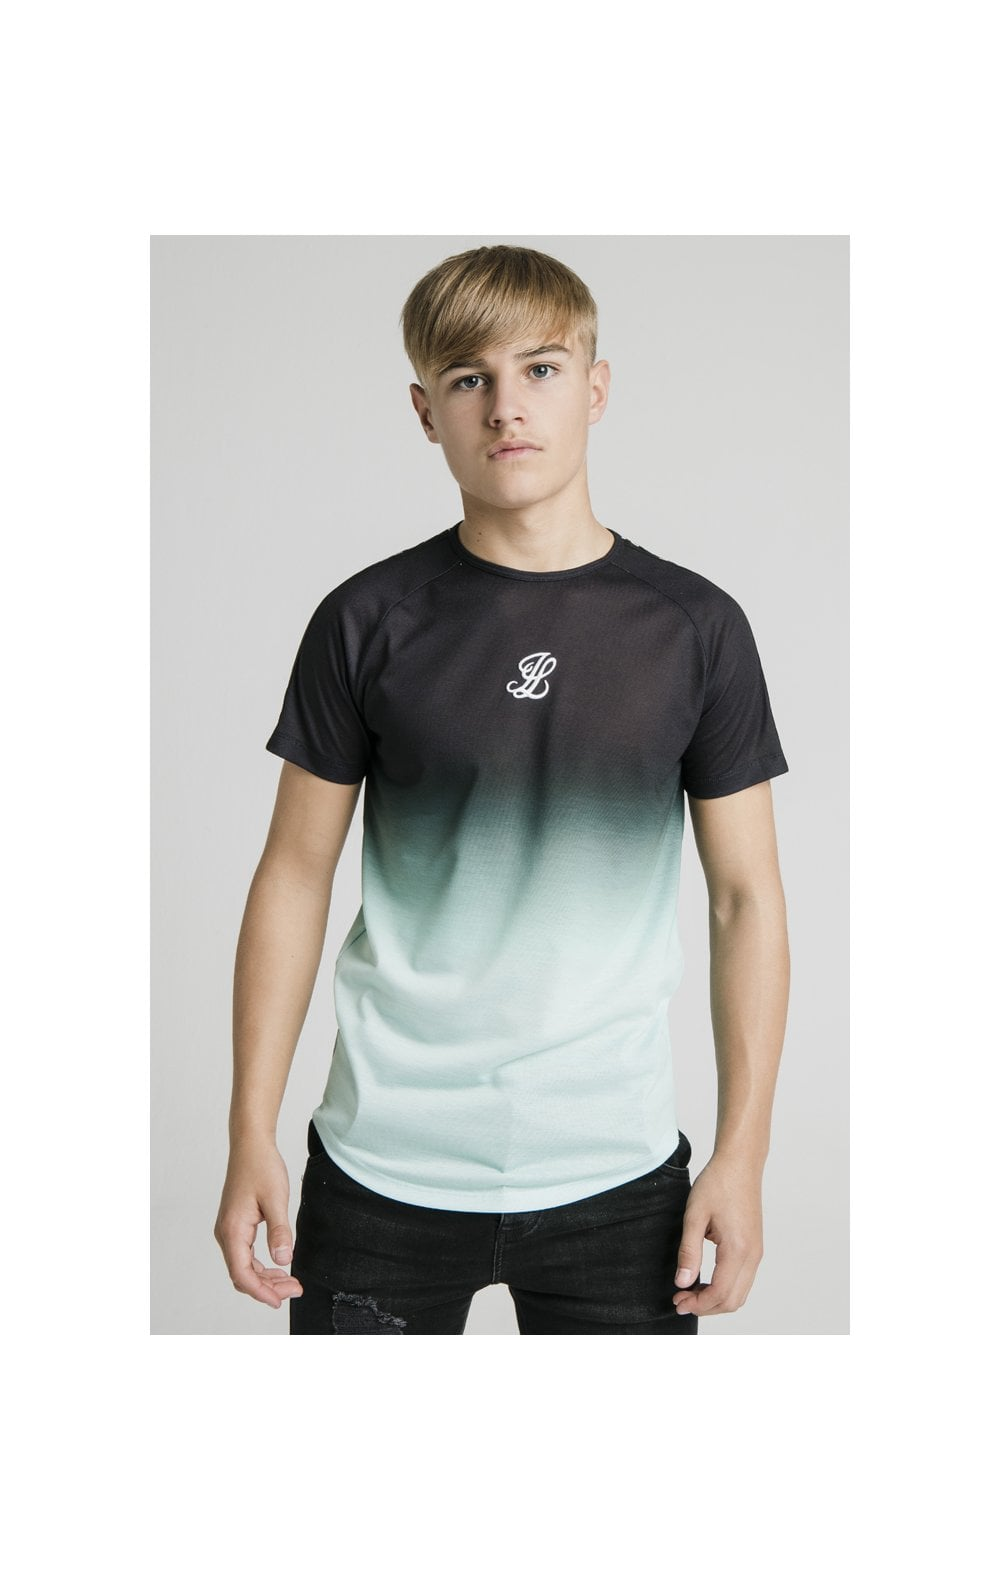 Illusive London Tape Fade Logo Tee - Black & Mint Kids Top Sizes: 7-8 YRS